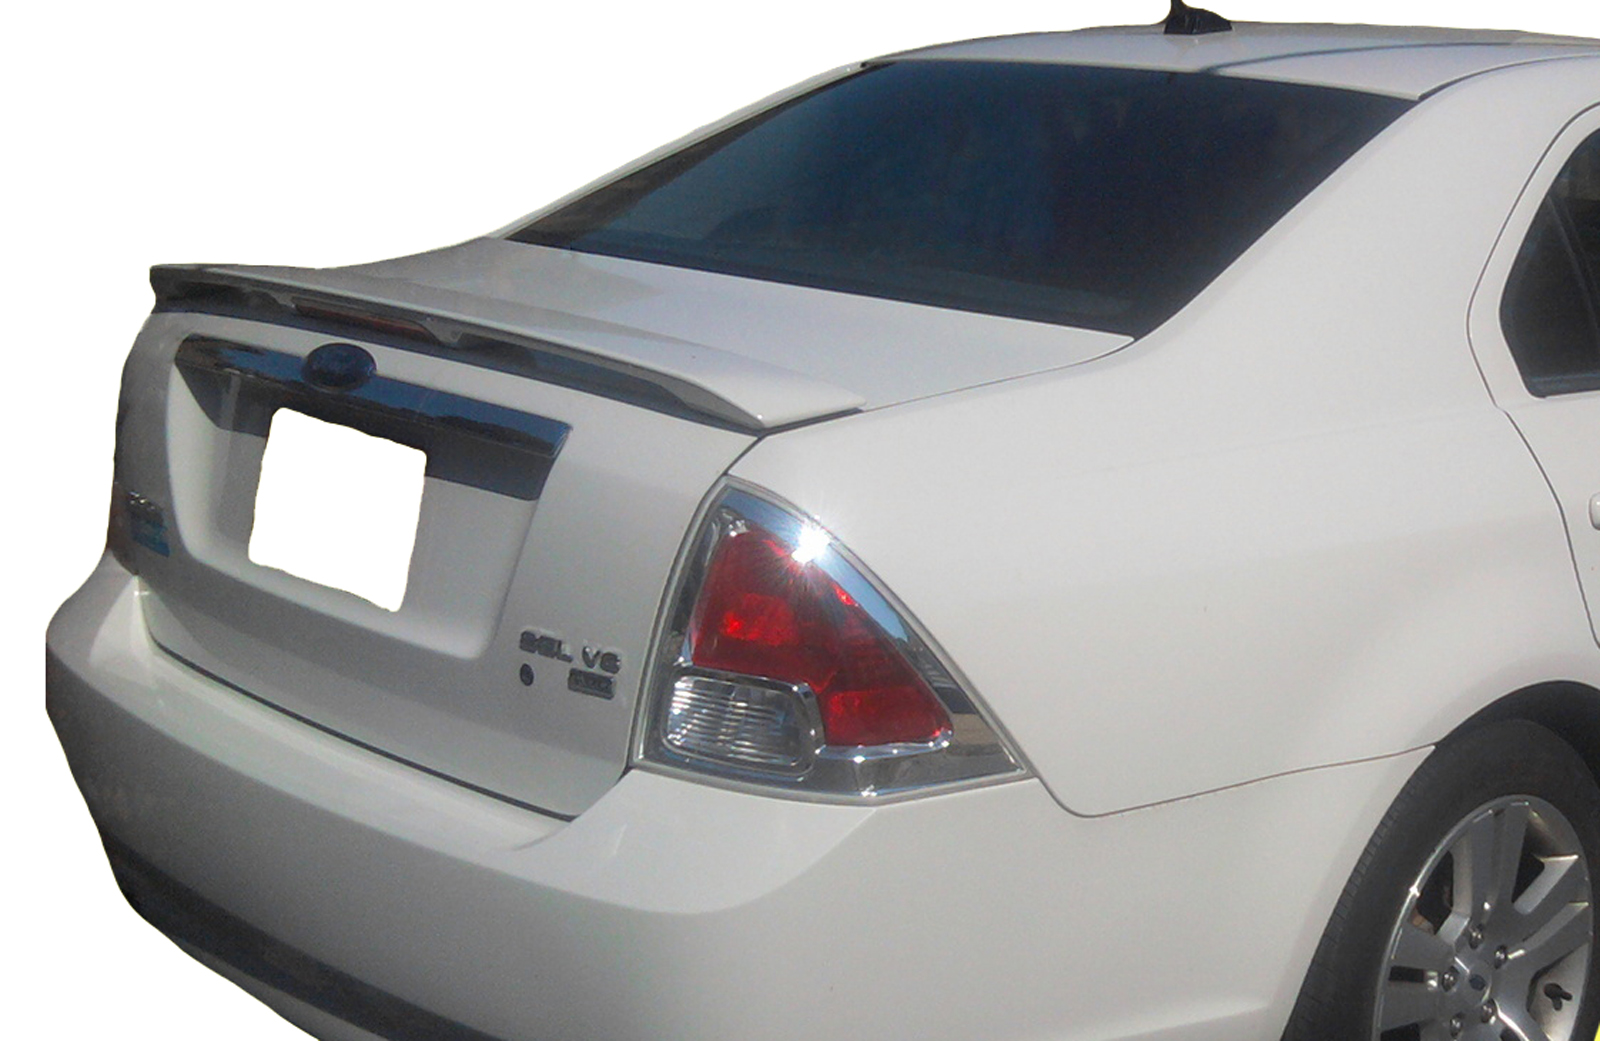 Factory Style GT Spoiler for the Ford Mustang Painted in the Factory Paint Code of Your Choice 548 CY